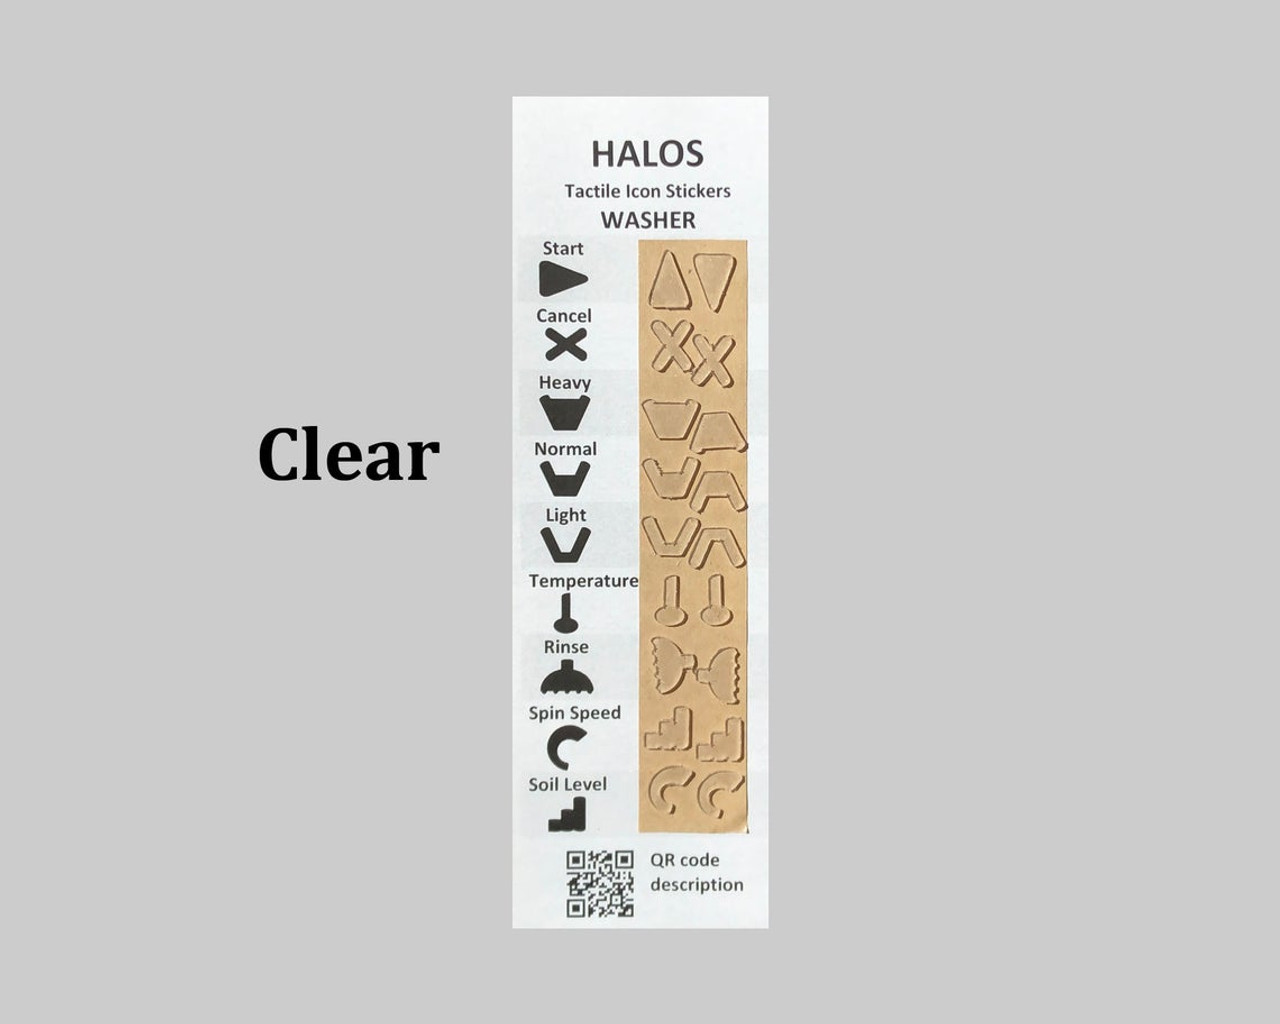 HALOS Tactile Washer Stickers - Clear - 2 sets per pack